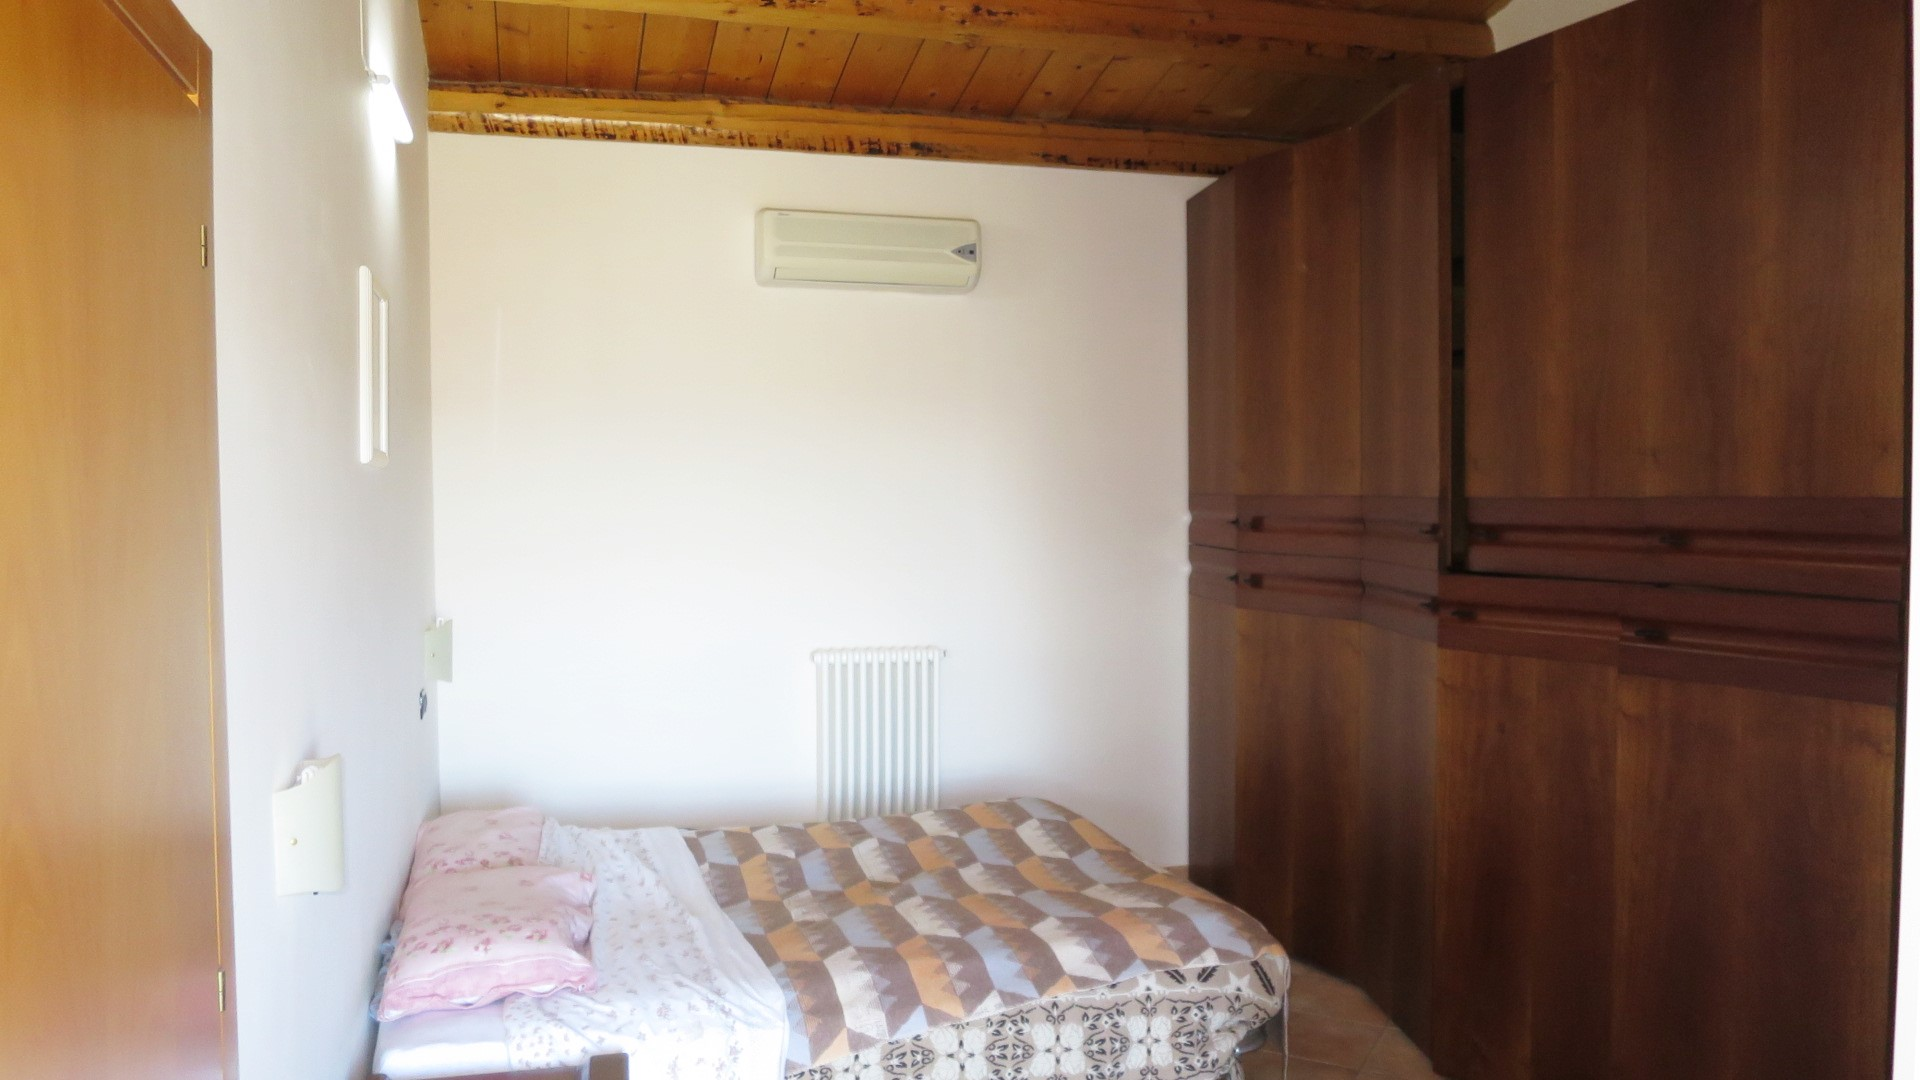 Country Houses Country Houses for sale Cellino Attanasio (TE), Casa Feudi - Cellino Attanasio - EUR 198.728 140